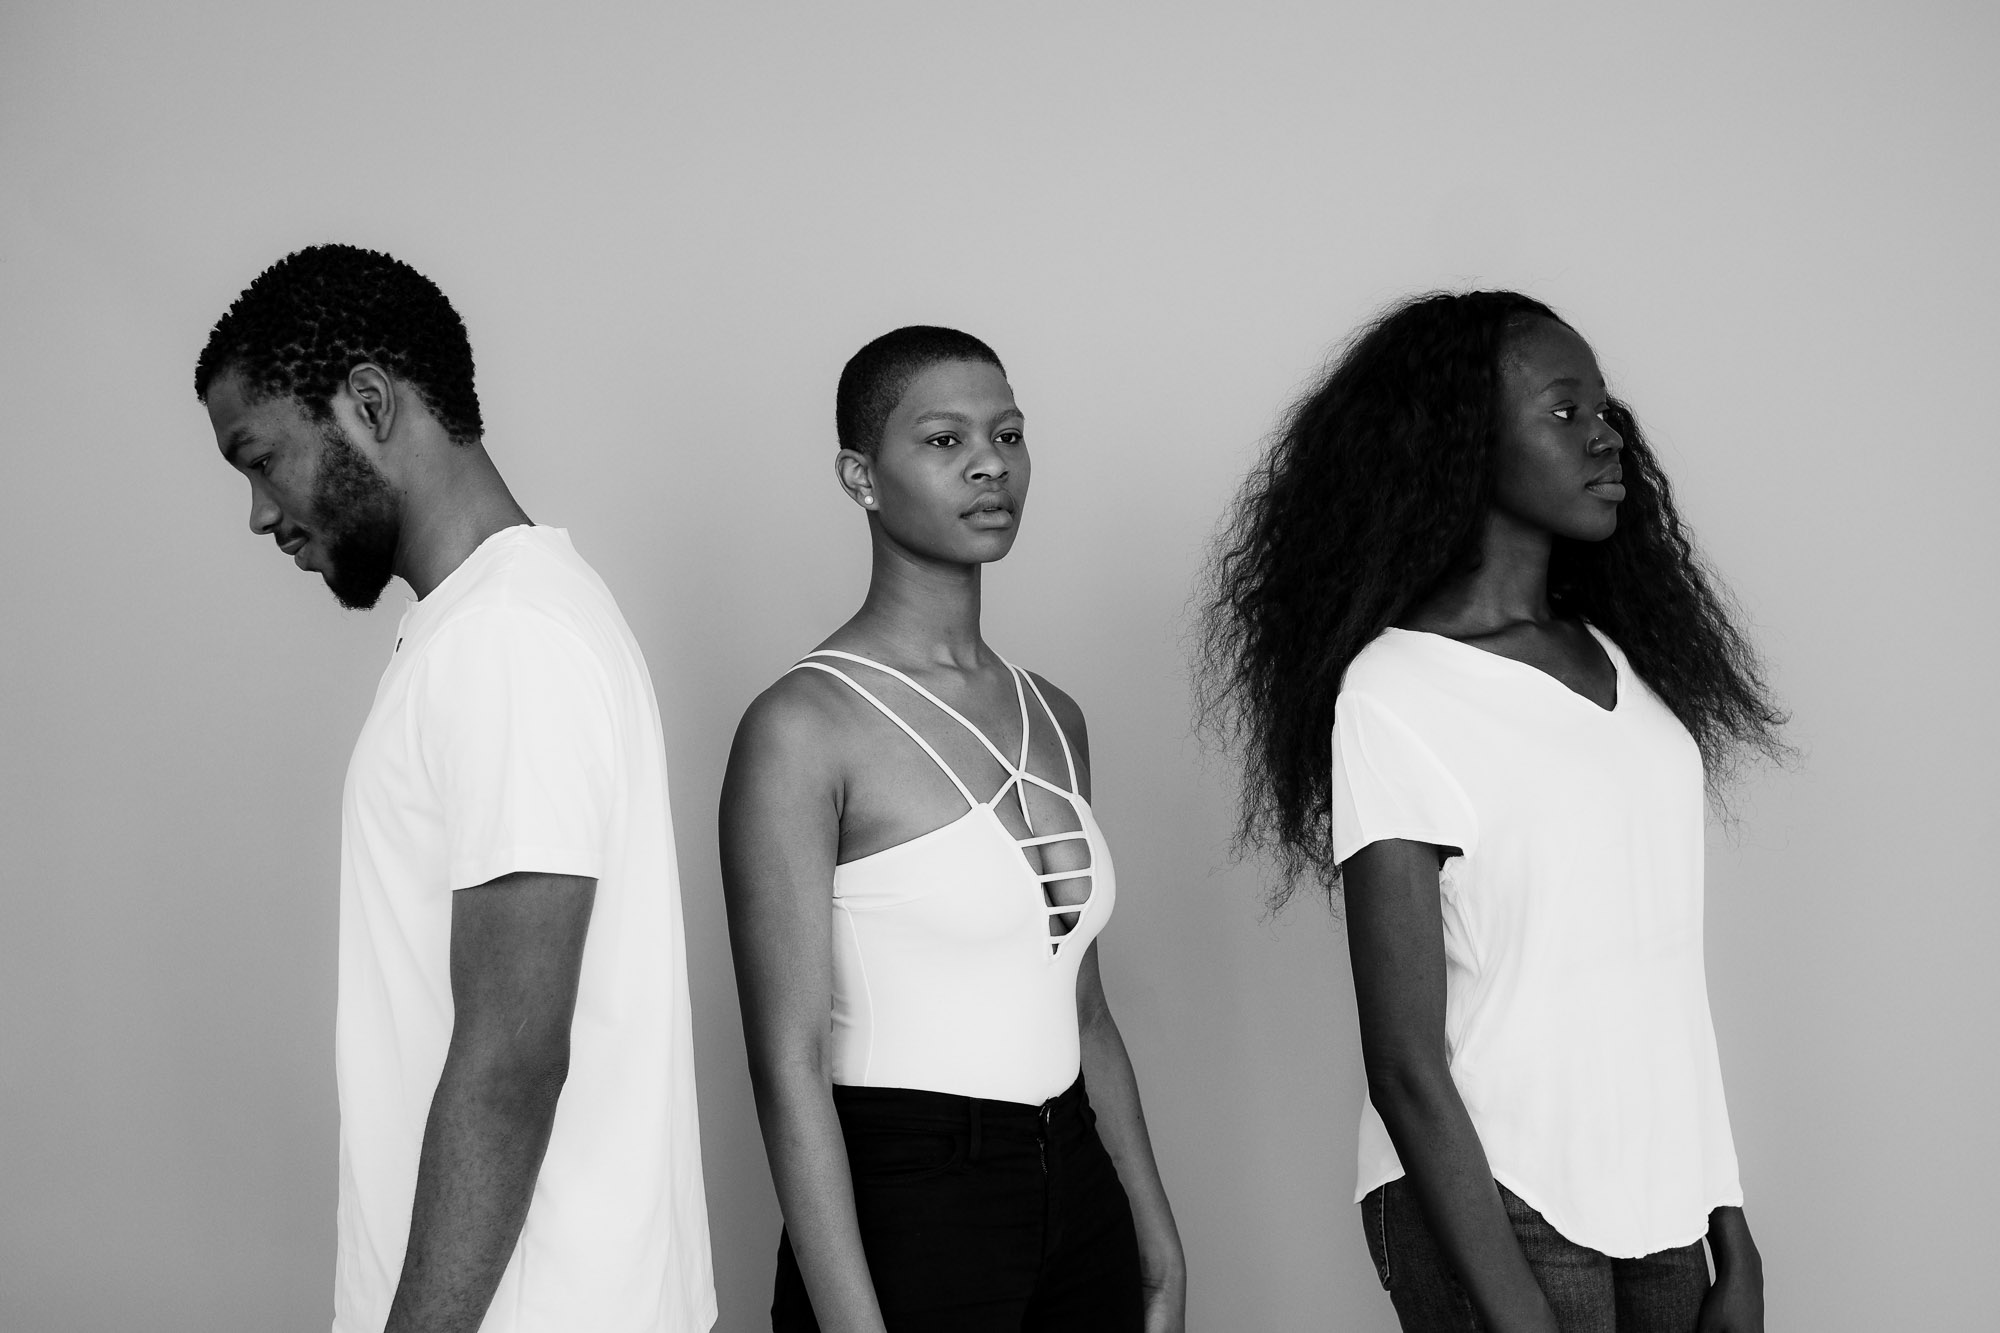 From (L-R): @ justlimitless , @ sinclxr  & @ lulgrace . Directed by @ botchwav . Photographed by @ kwesithethird